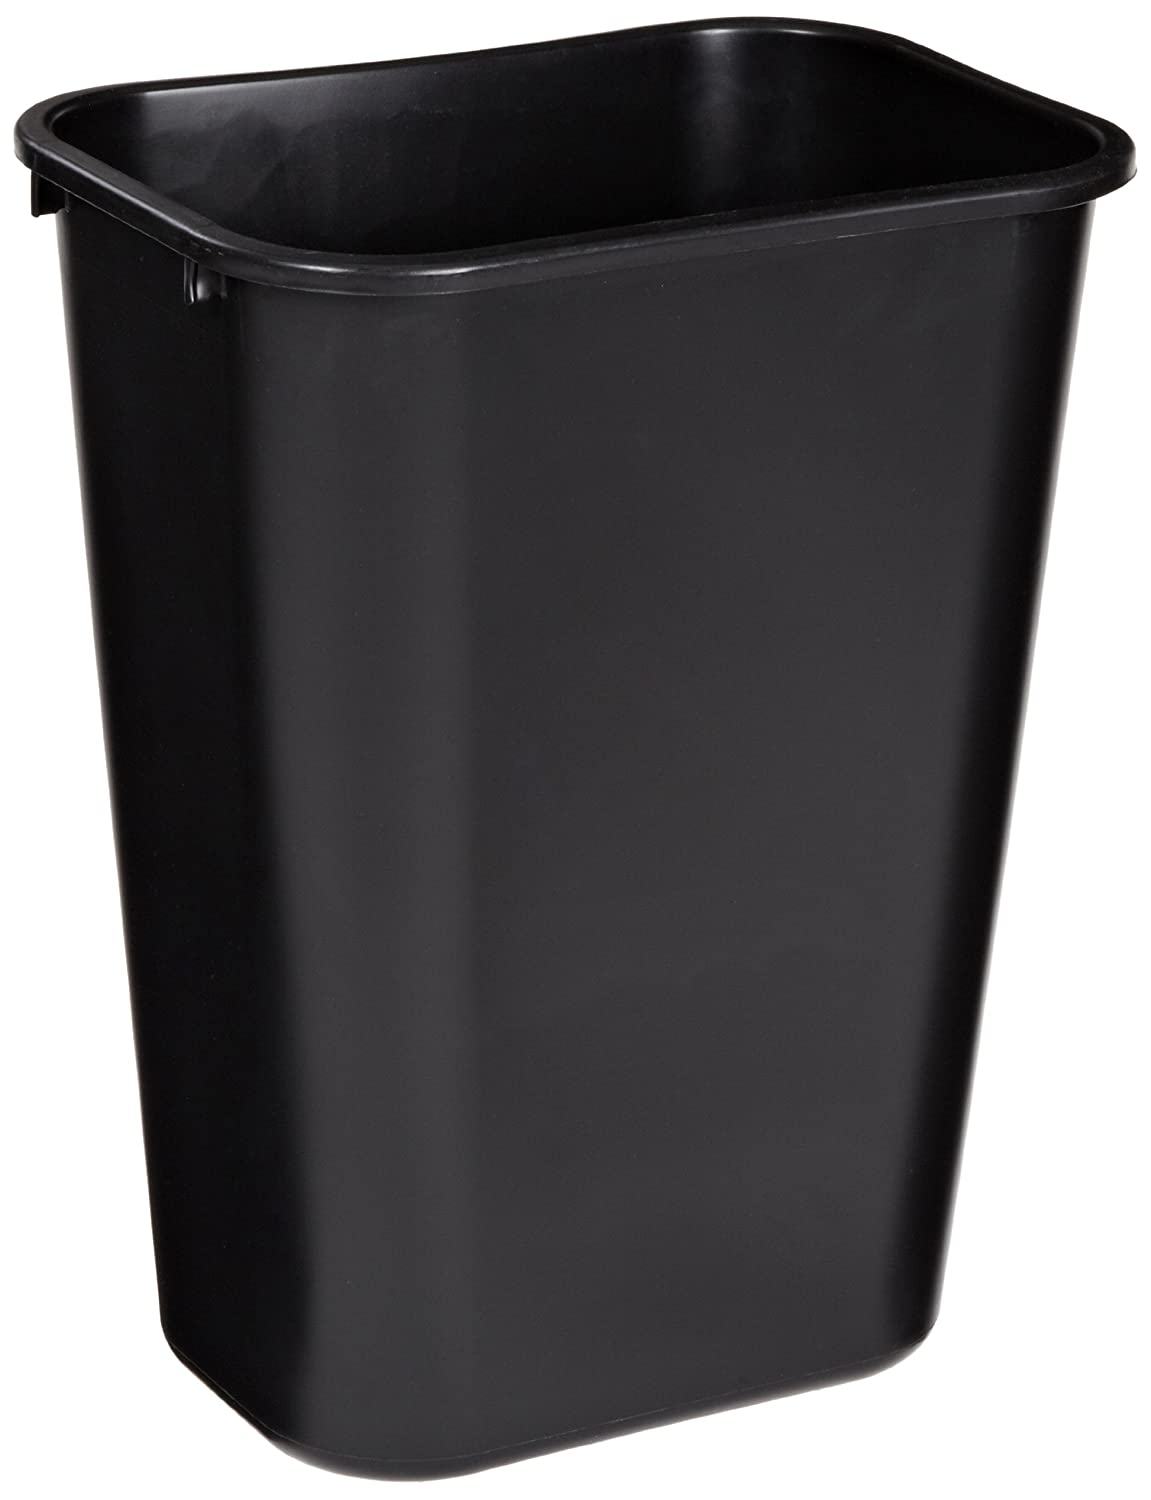 Image Result For Rubbermaid Commercial Trash Cans